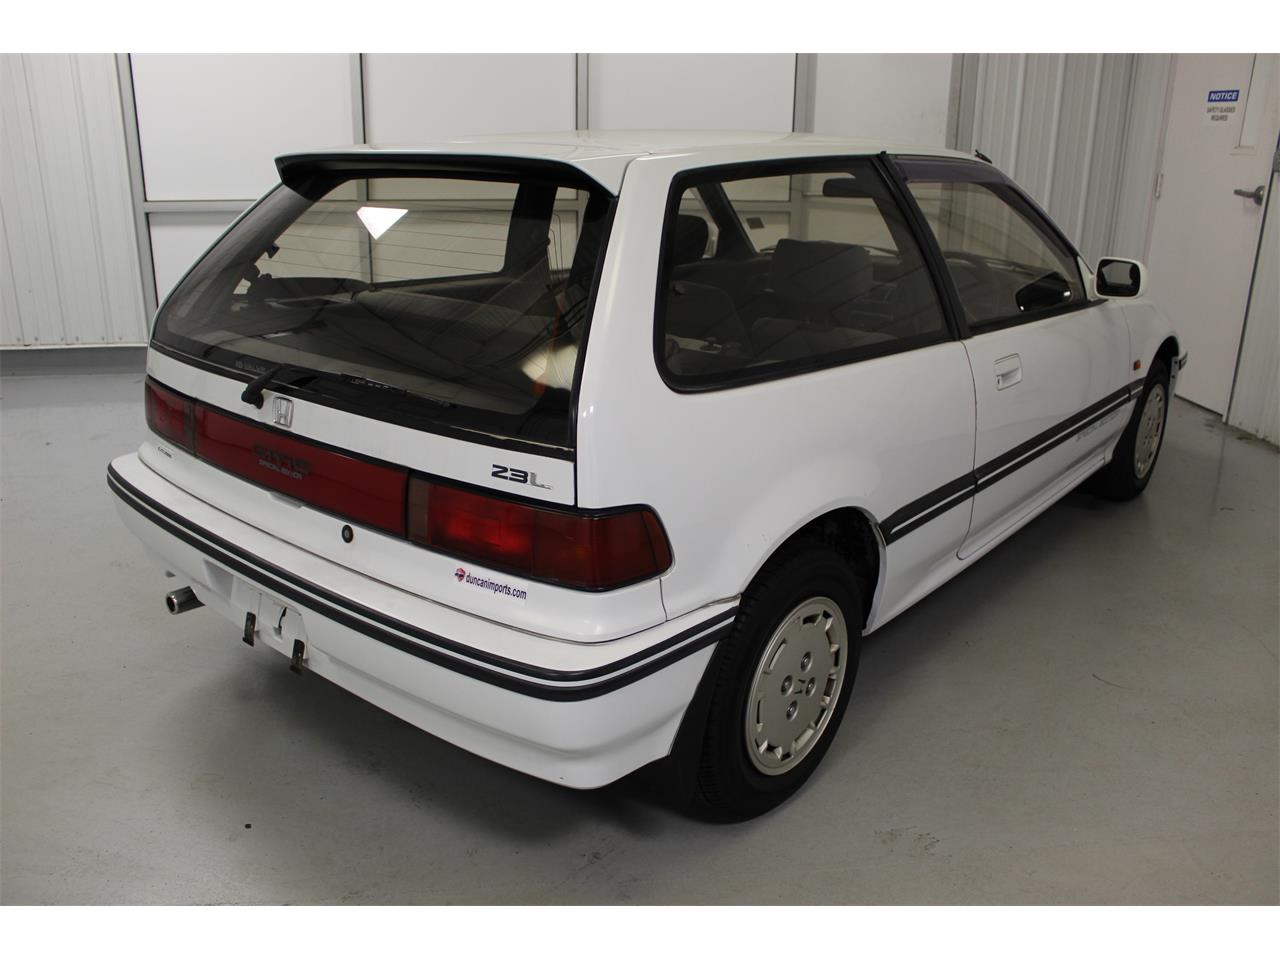 Large Picture of 1991 Civic located in Christiansburg Virginia - $9,999.00 Offered by Duncan Imports & Classic Cars - PCM2